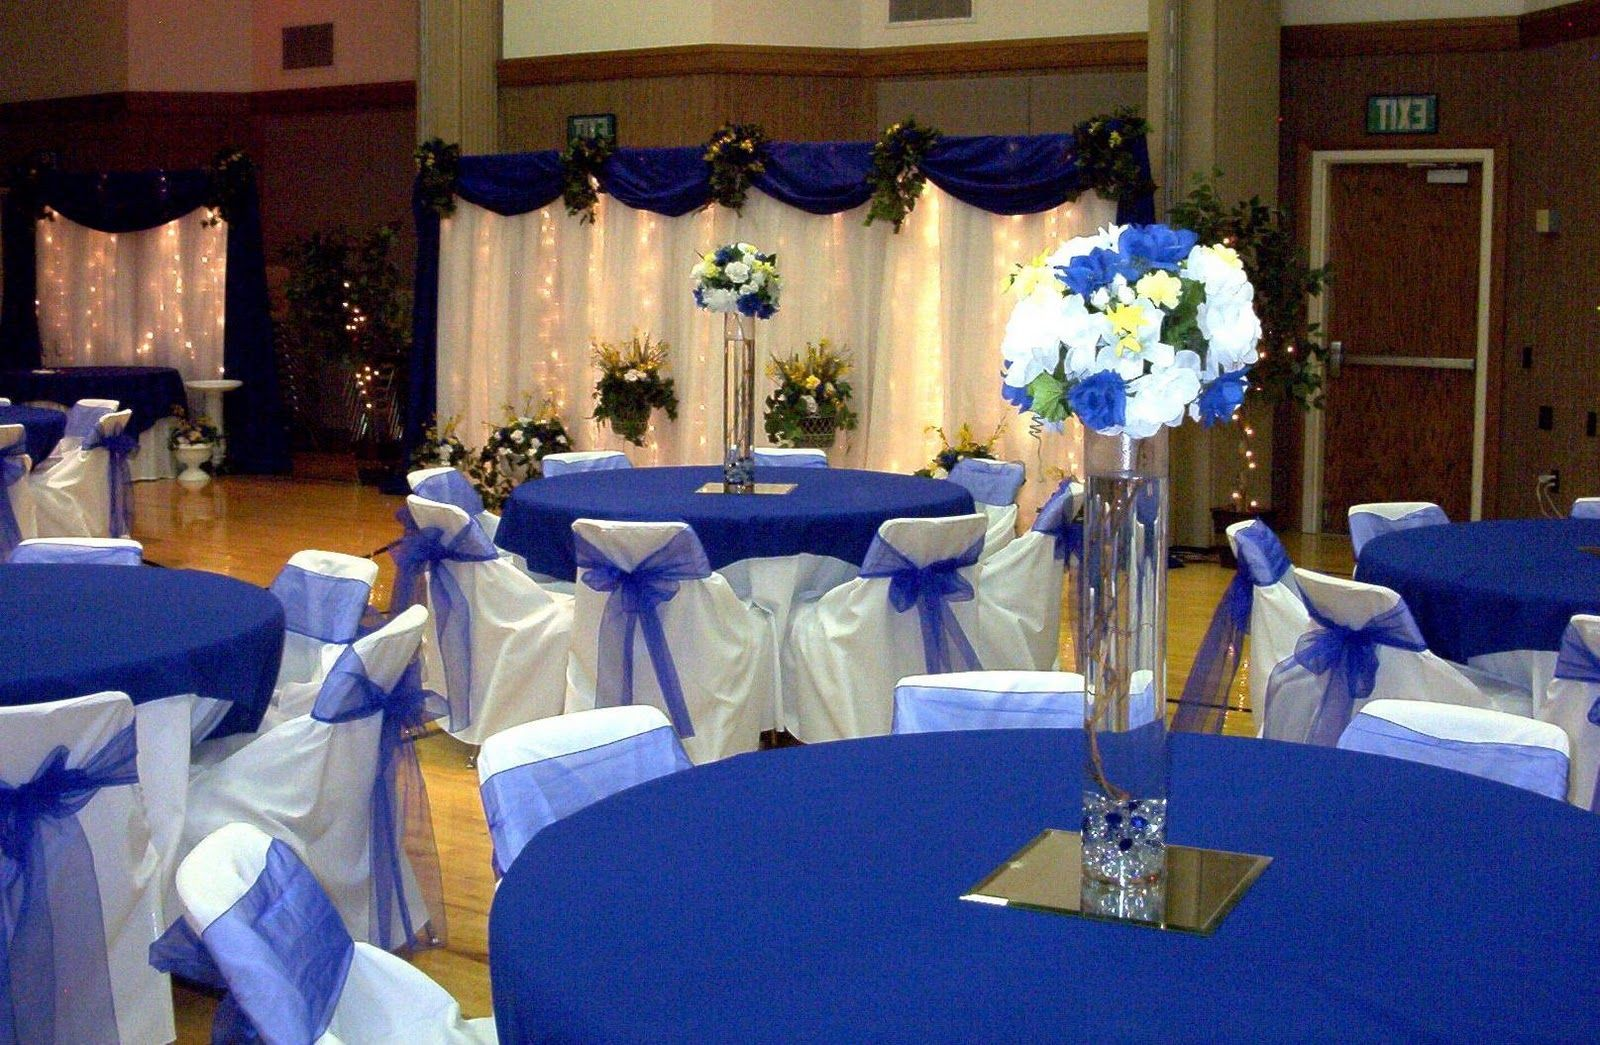 Wedding decor blue royal blue wedding centerpieces pic 4 for Baby blue wedding decoration ideas